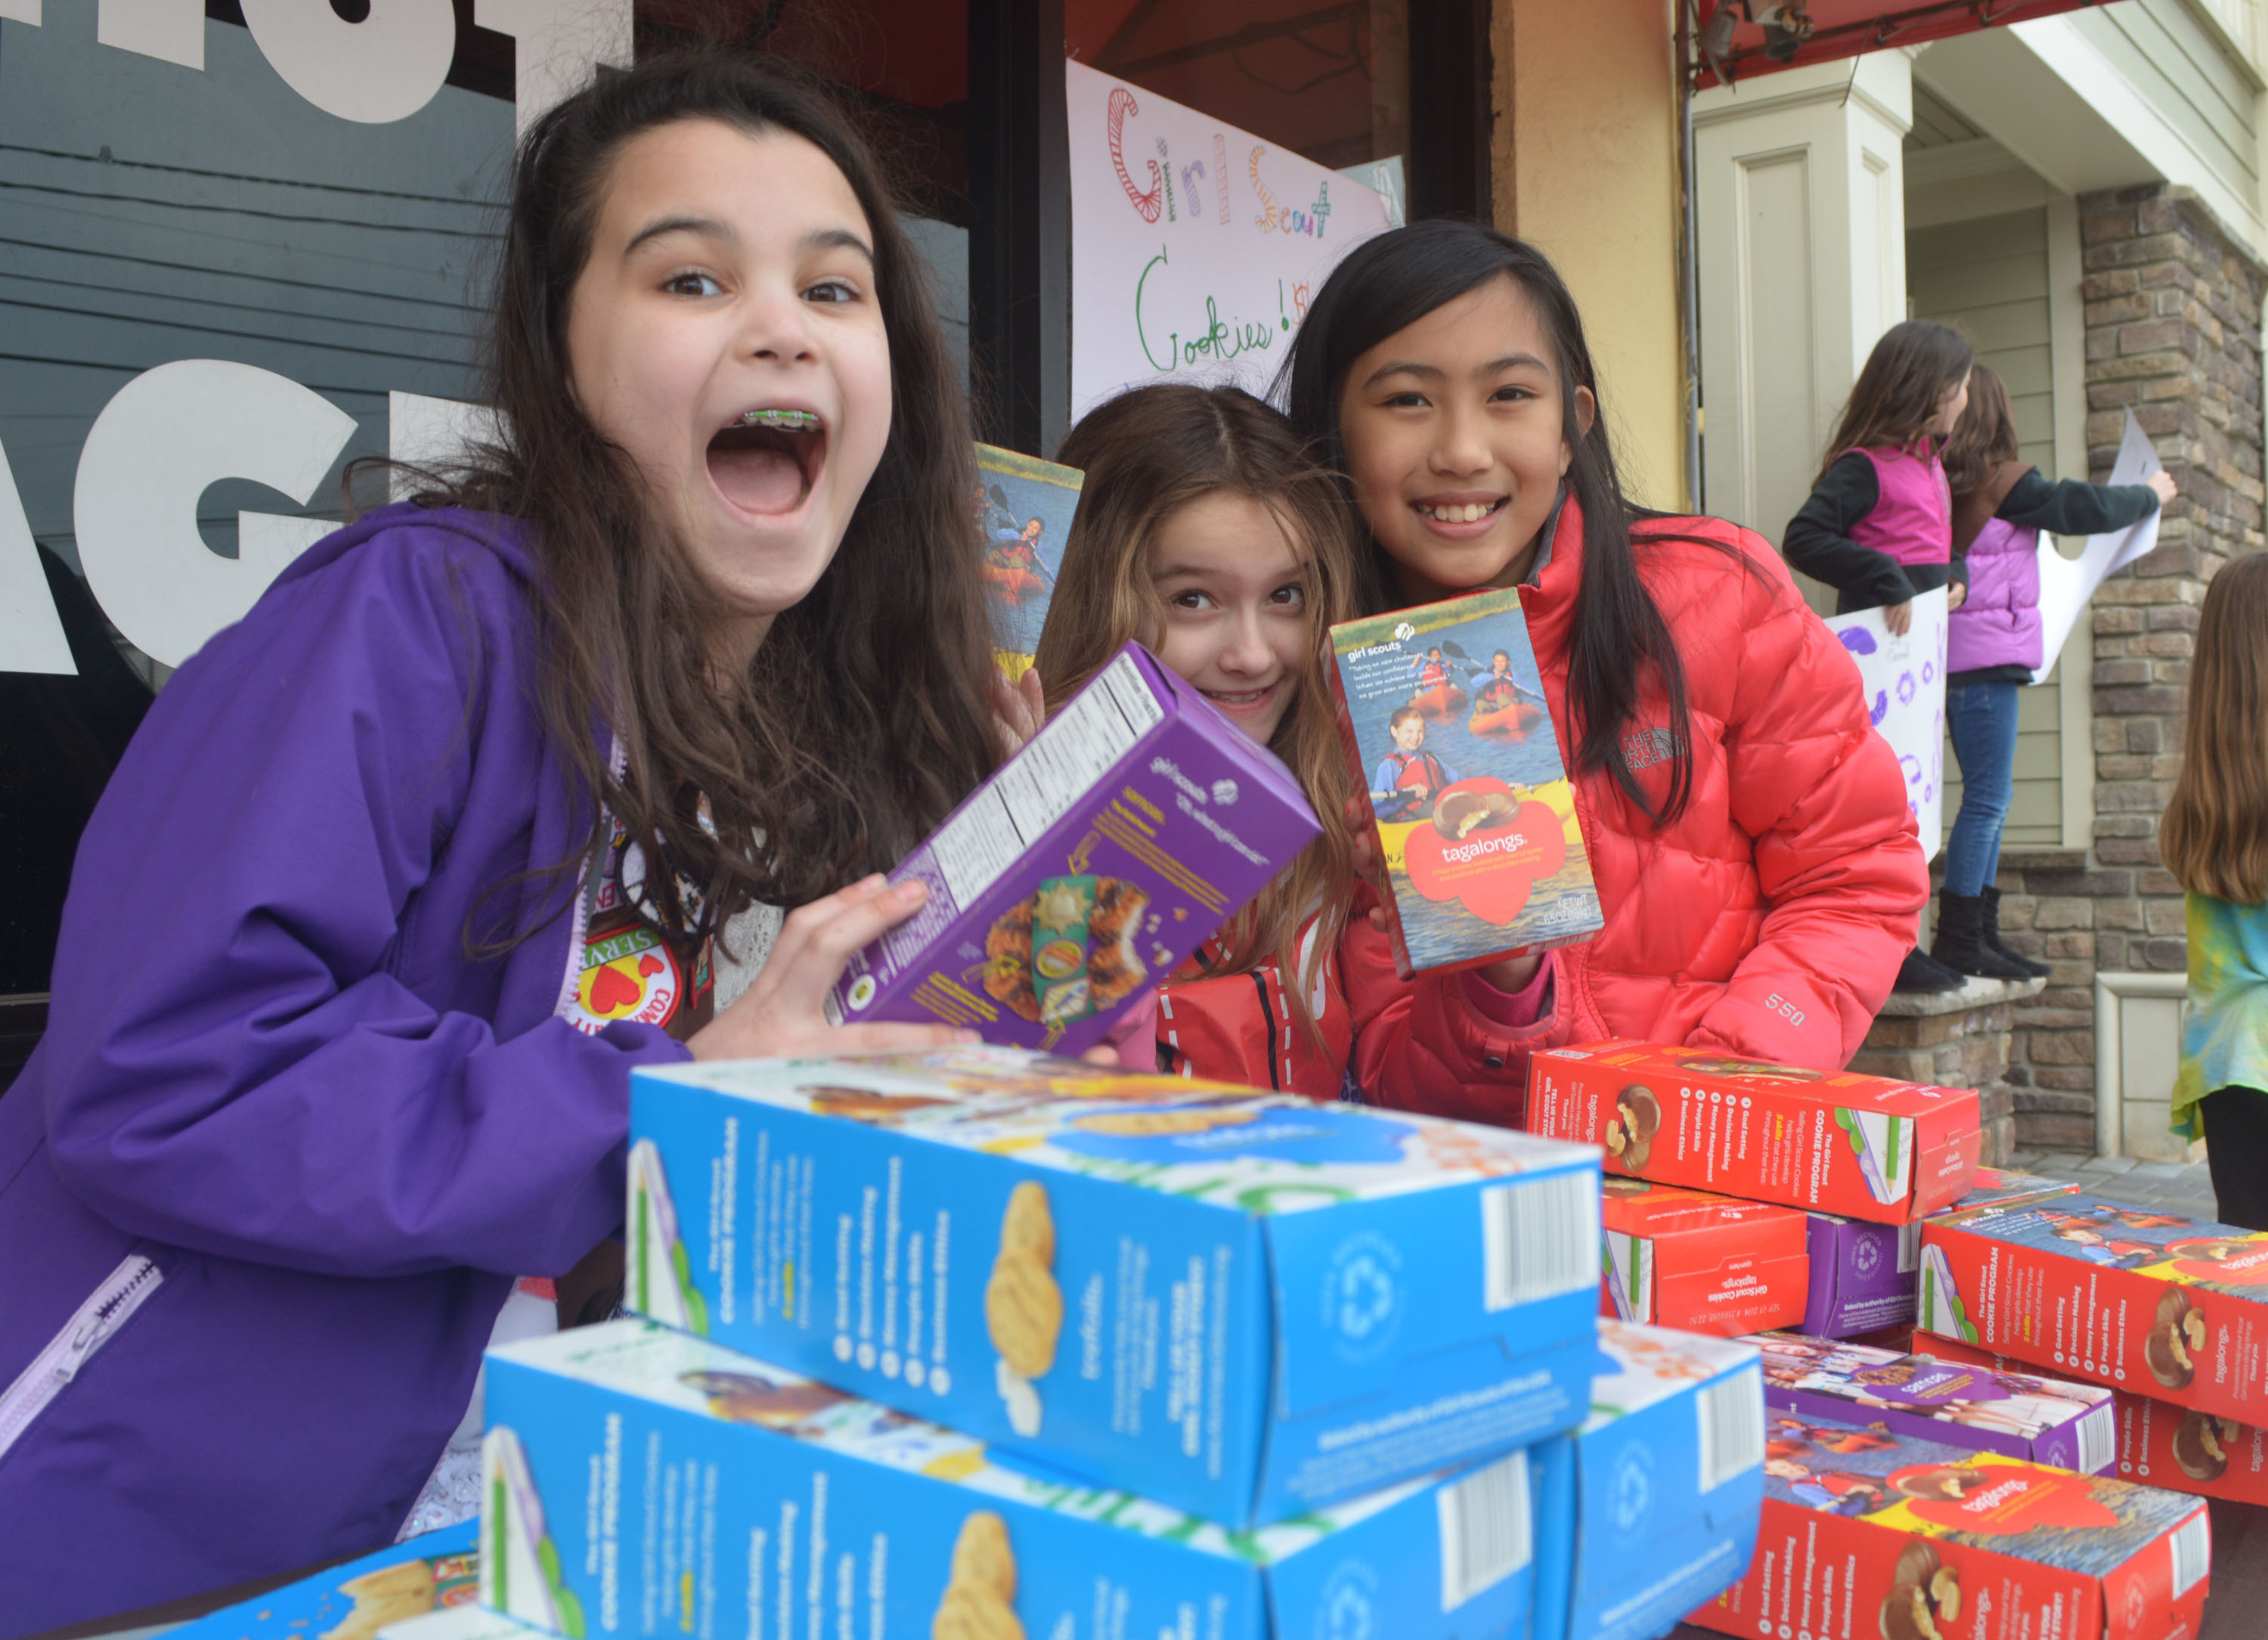 fadf4cfbb23991bc5162_Girl_Scouts_sell_cookies_3-22-14.jpg